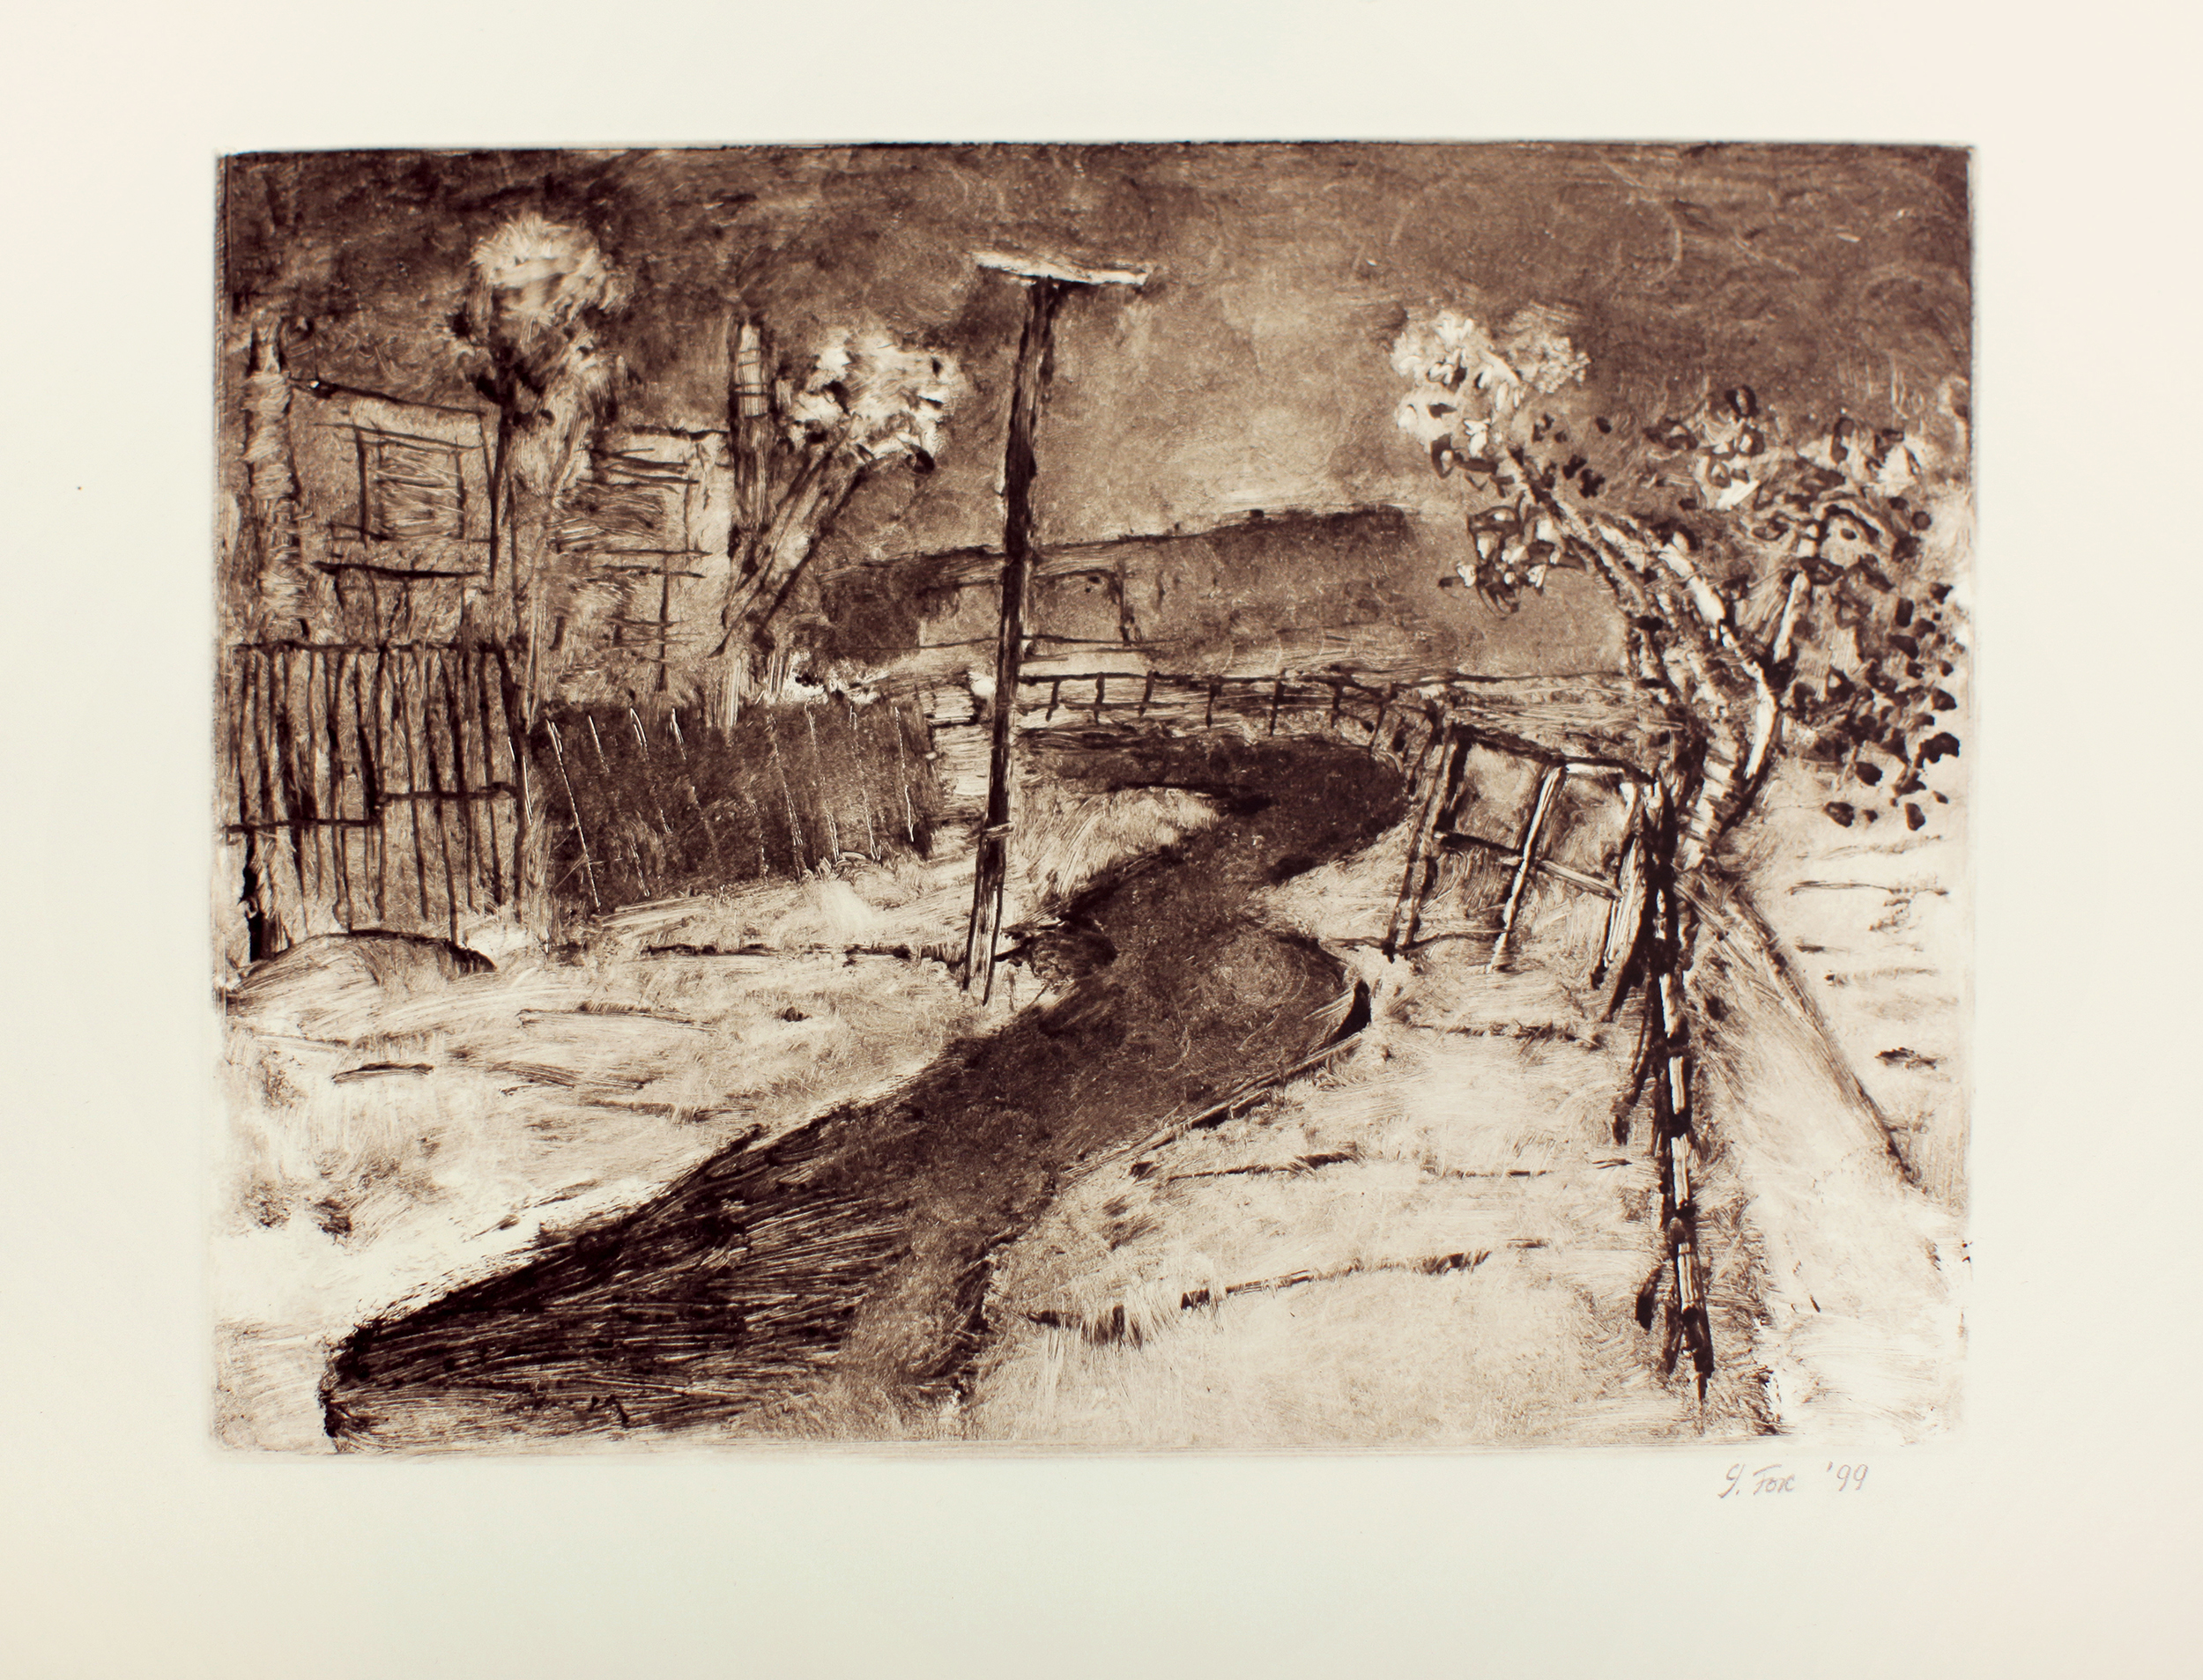 1990_St_Henri_monotype_on_paper_paper_15x18in_image_9x12in_WPF430.jpg